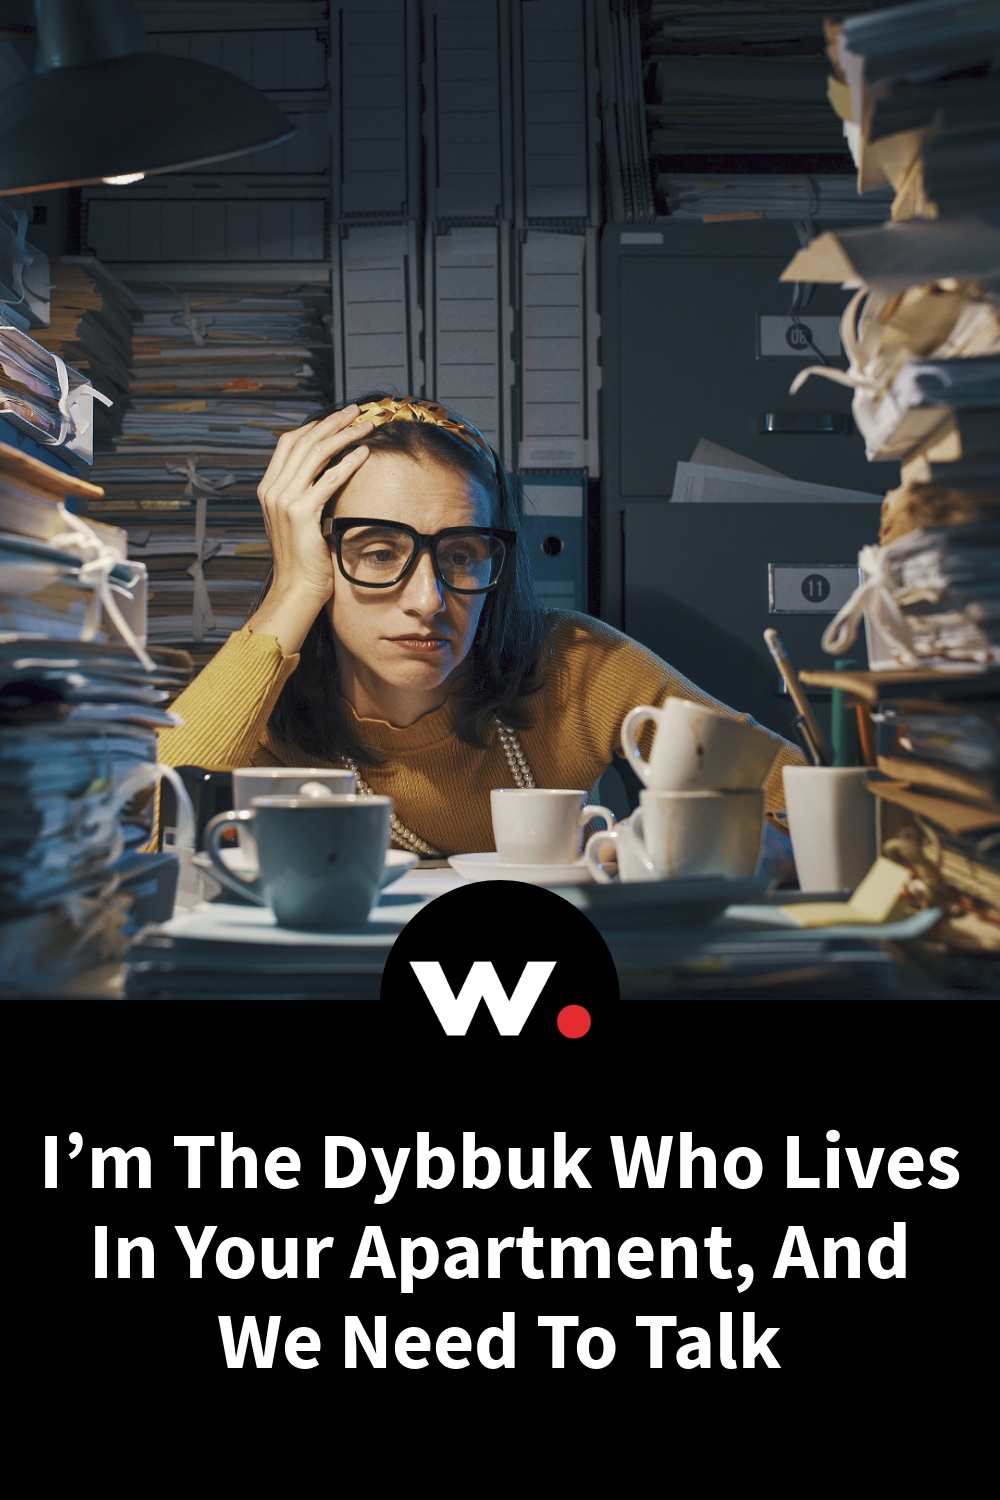 I'm The Dybbuk Who Lives In Your Apartment, And We Need To Talk